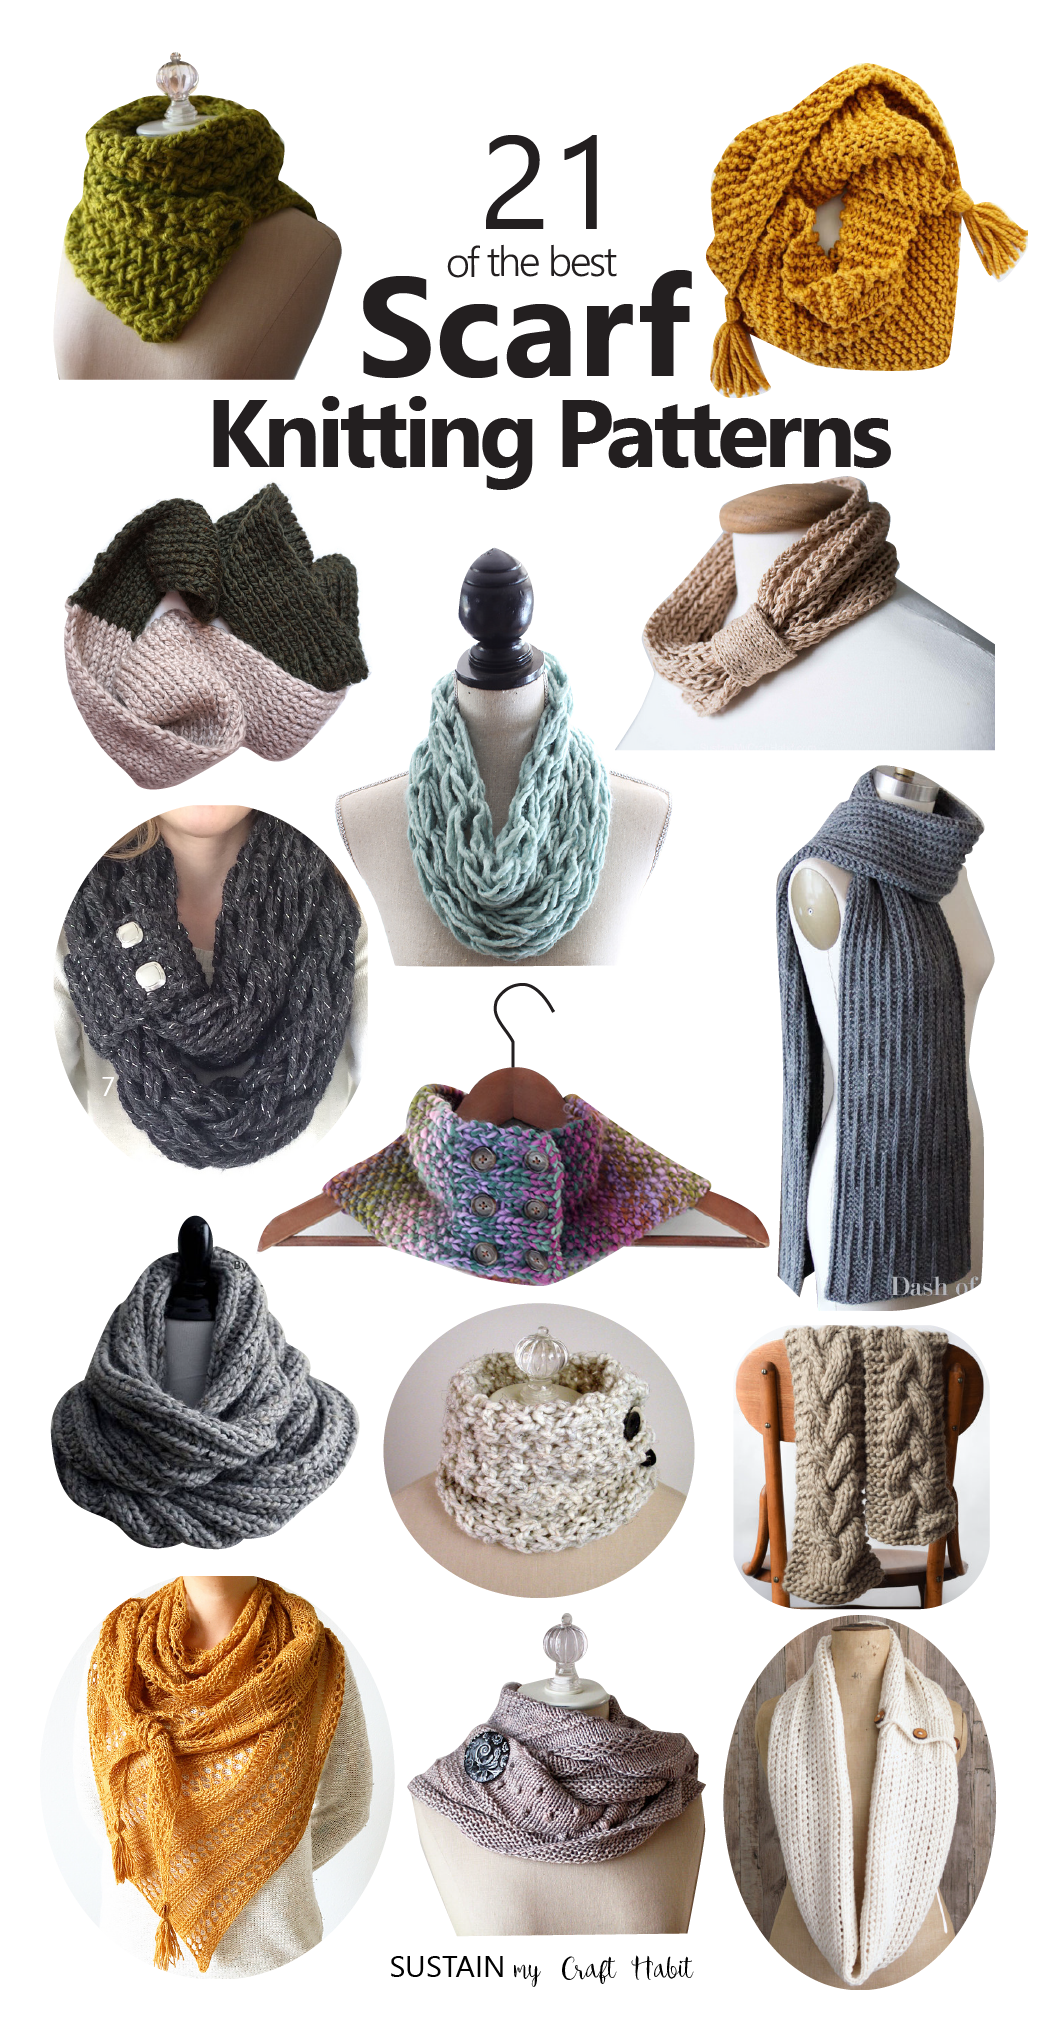 Collage of images showing 14 different scarf knitting patterns